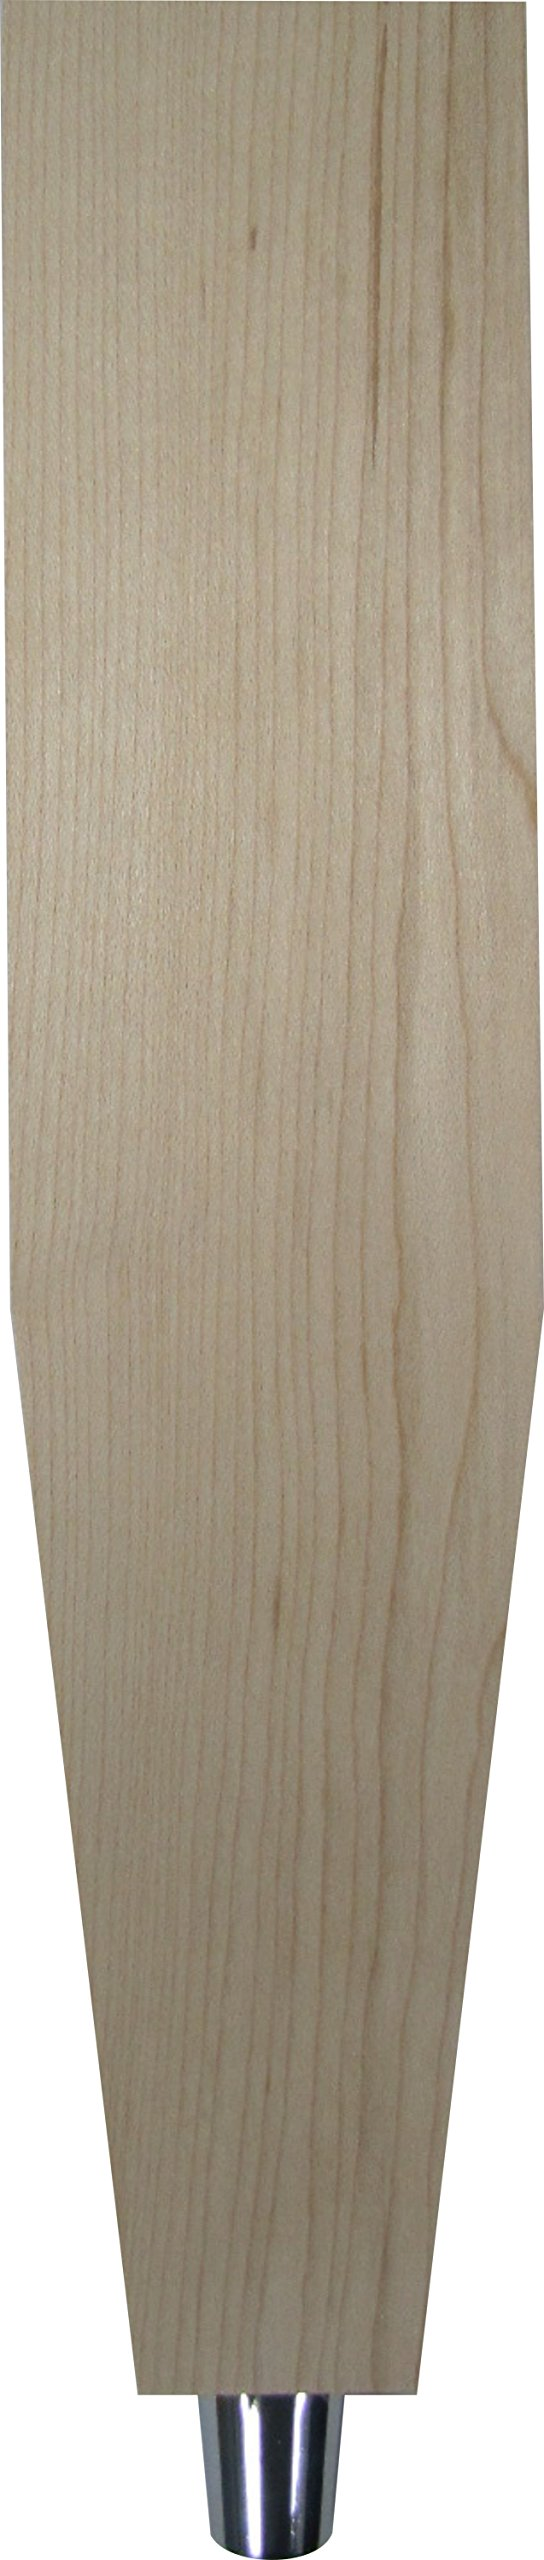 Unfinished 12.5'' Solid Maple Tapered Tap Handle